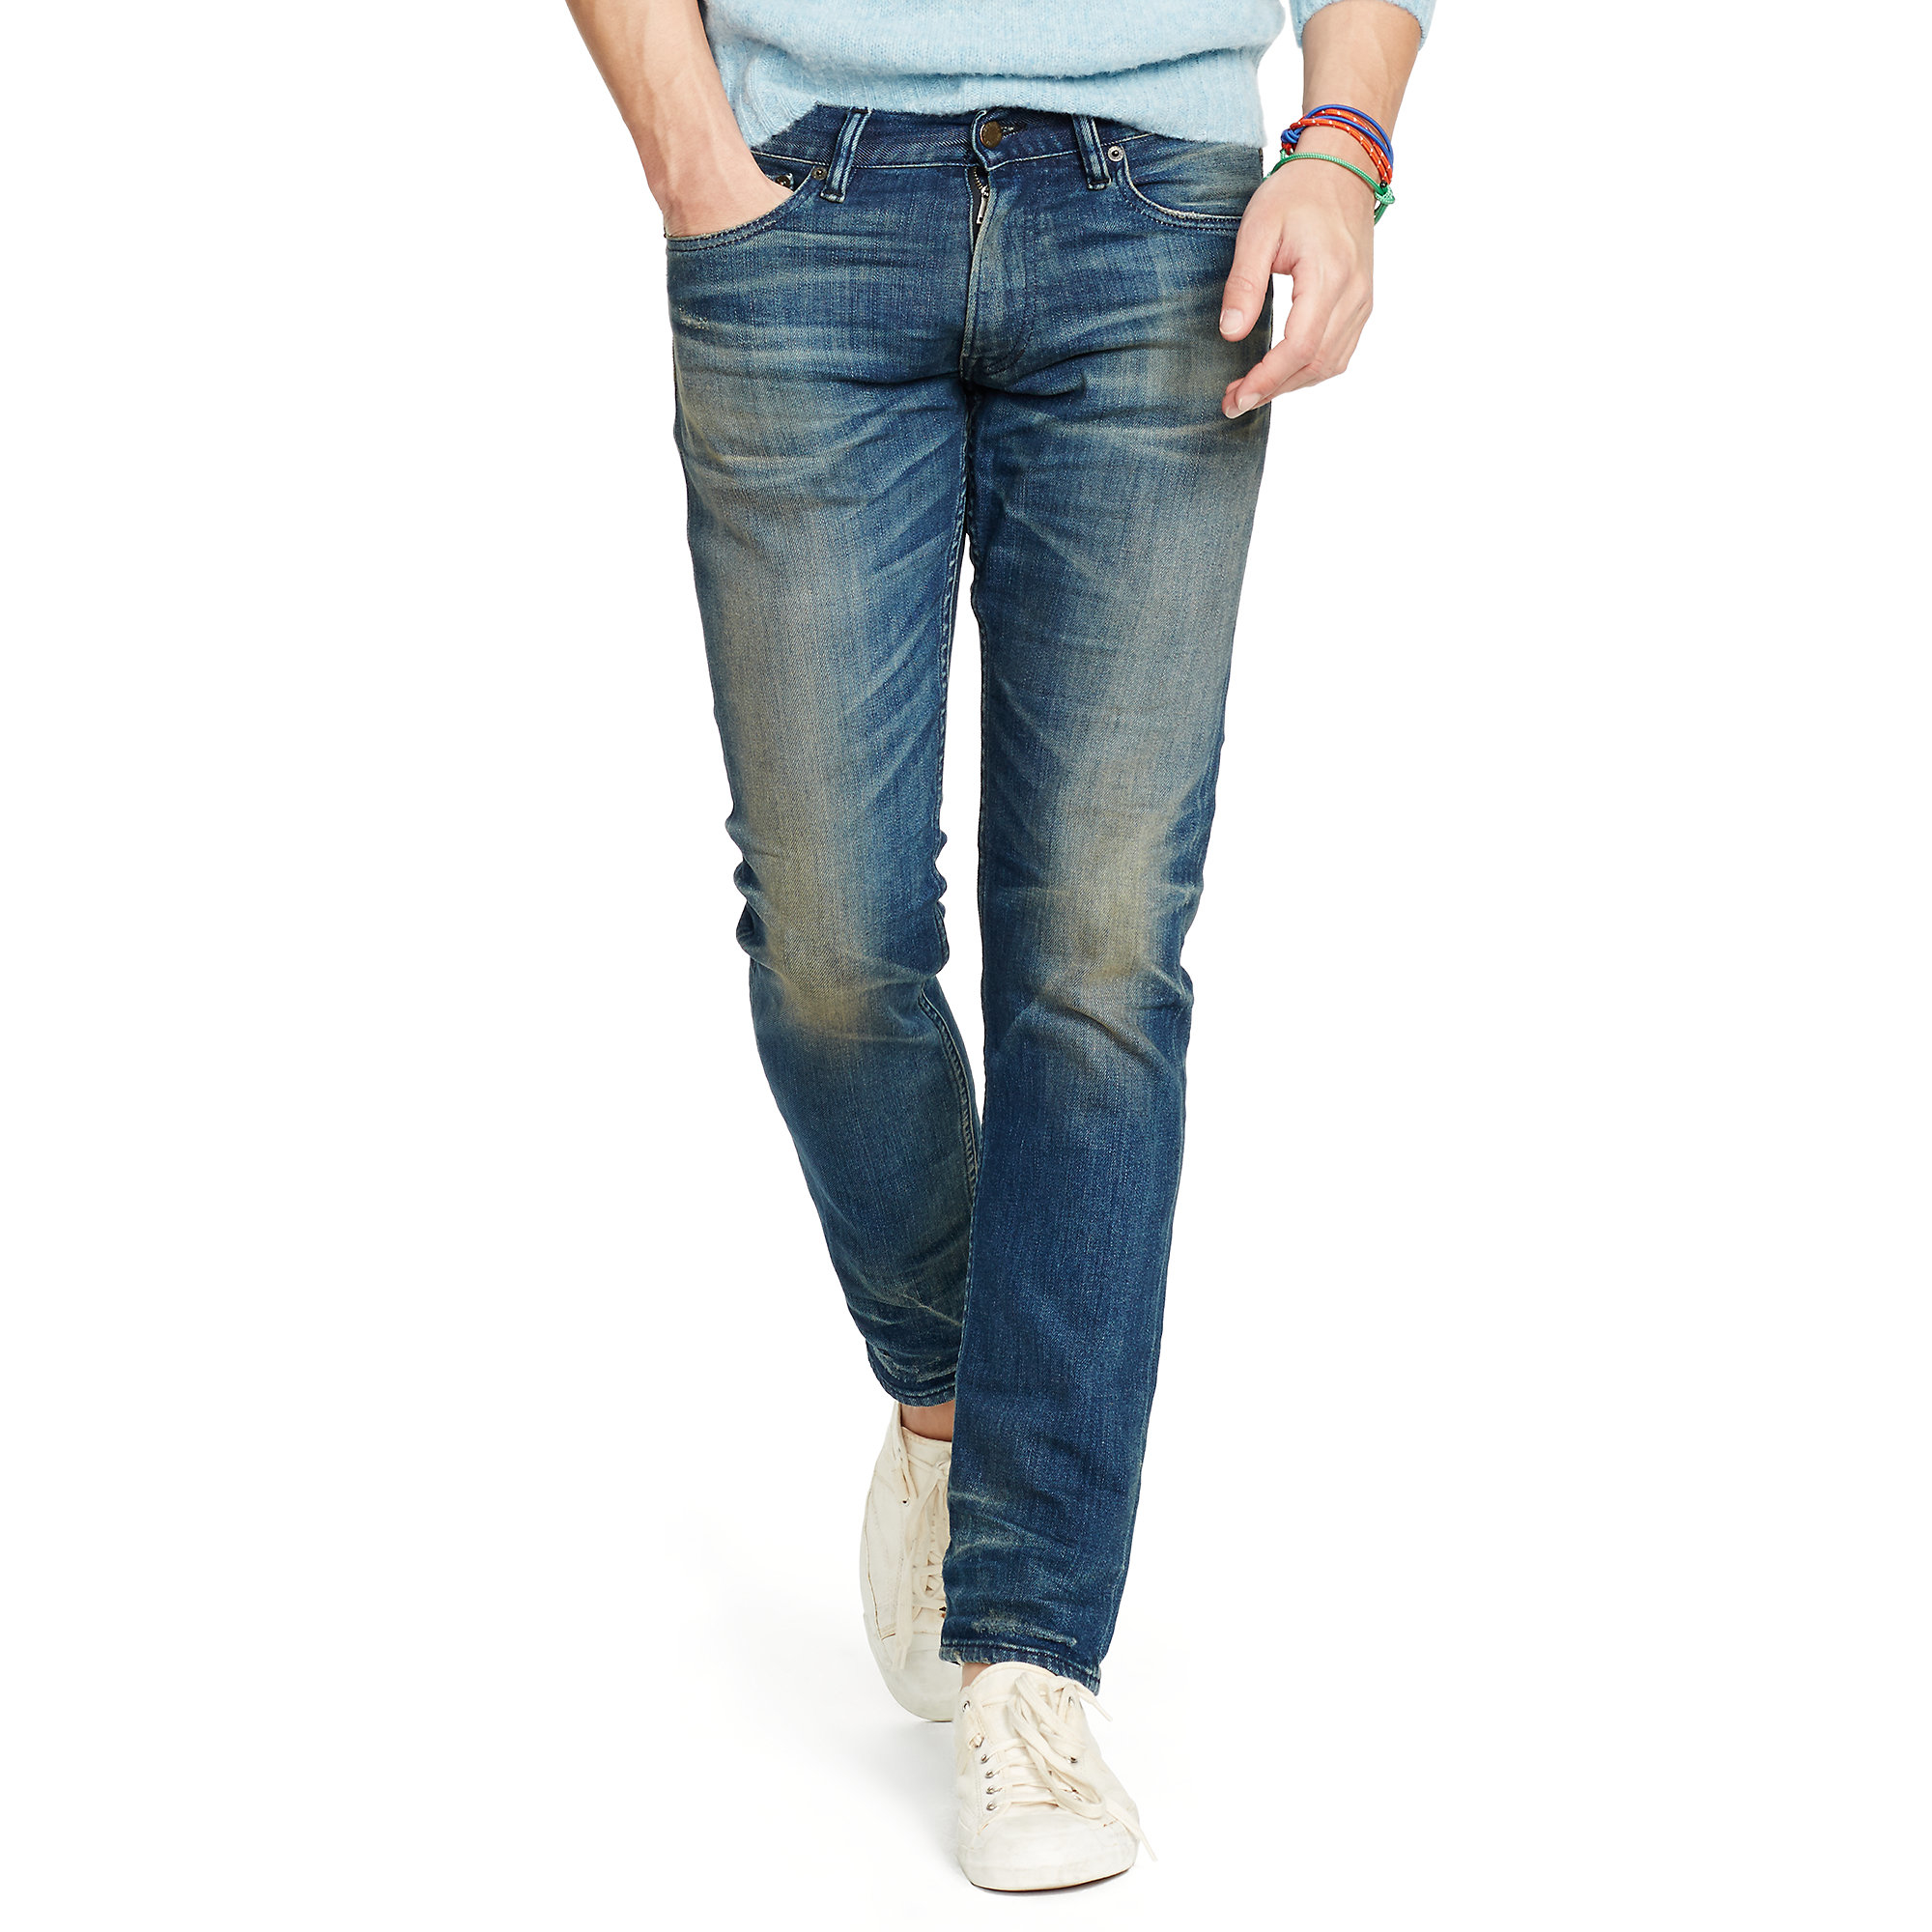 94073f5c93 Polo Ralph Lauren Blue Sullivan Slim-fit Jean for men